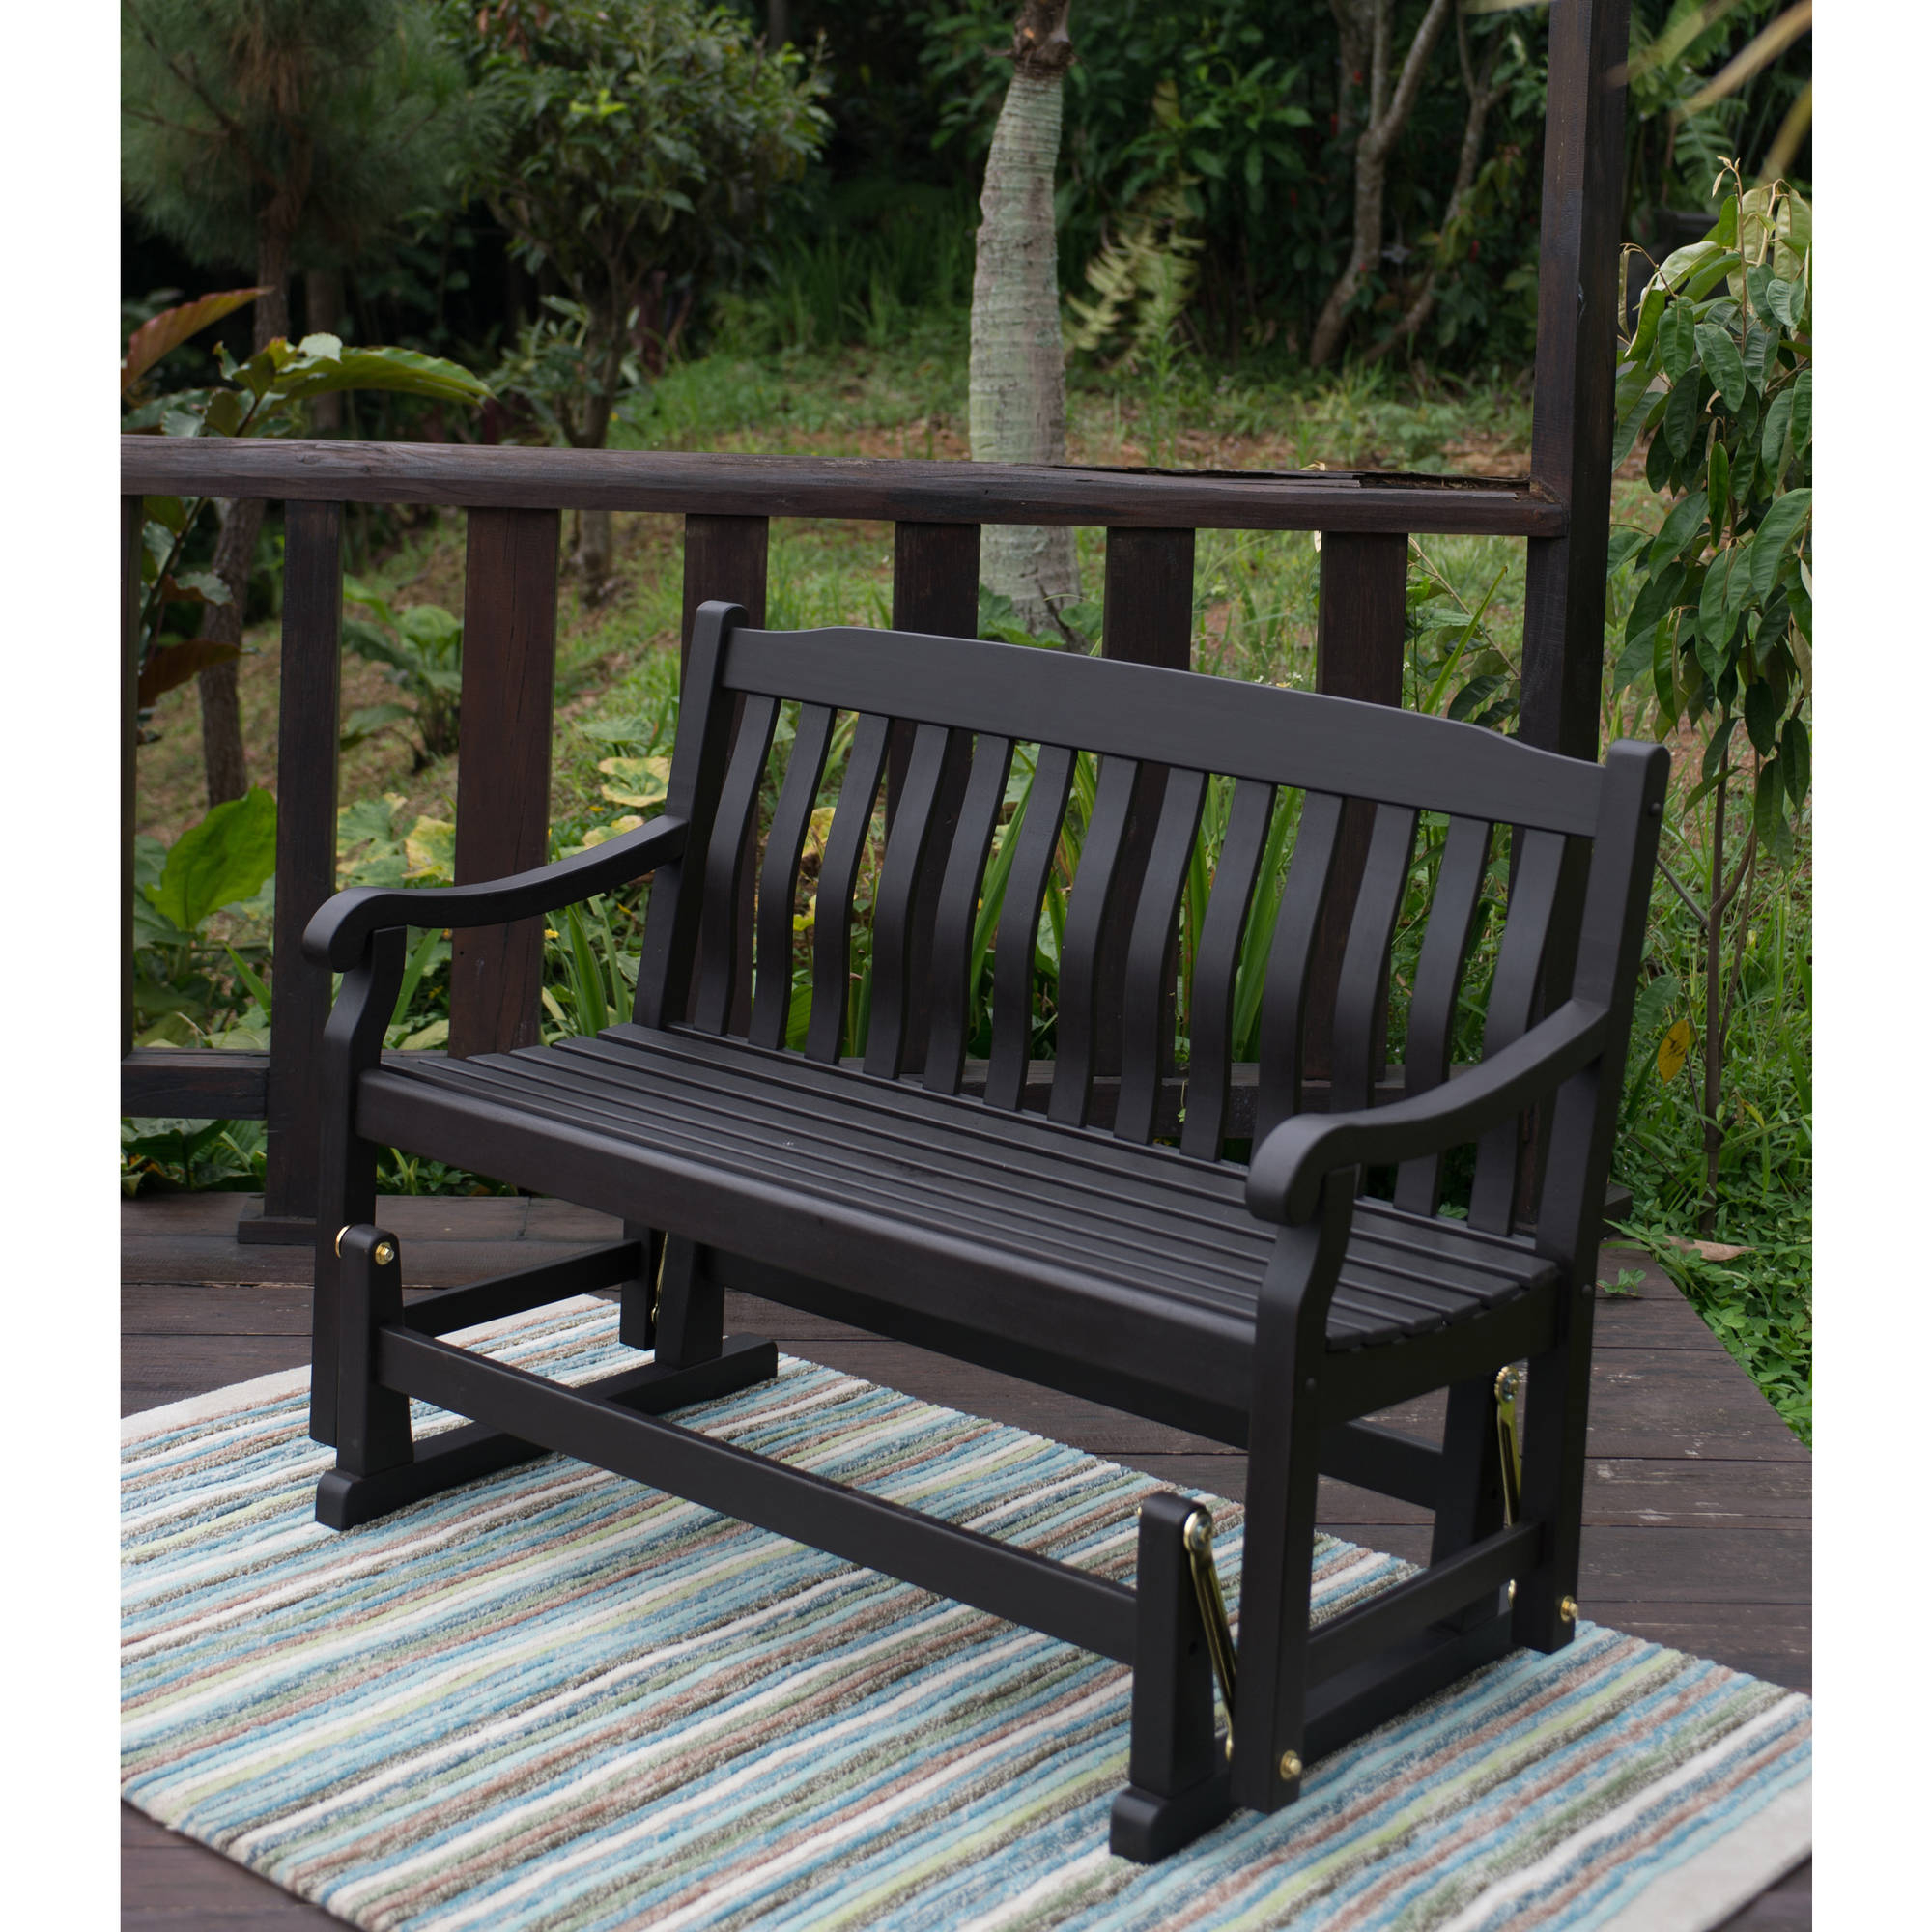 Better Homes & Gardens Delahey Outdoor Glider Bench, Dark Brown – Walmart For 2019 Low Back Glider Benches (View 19 of 30)